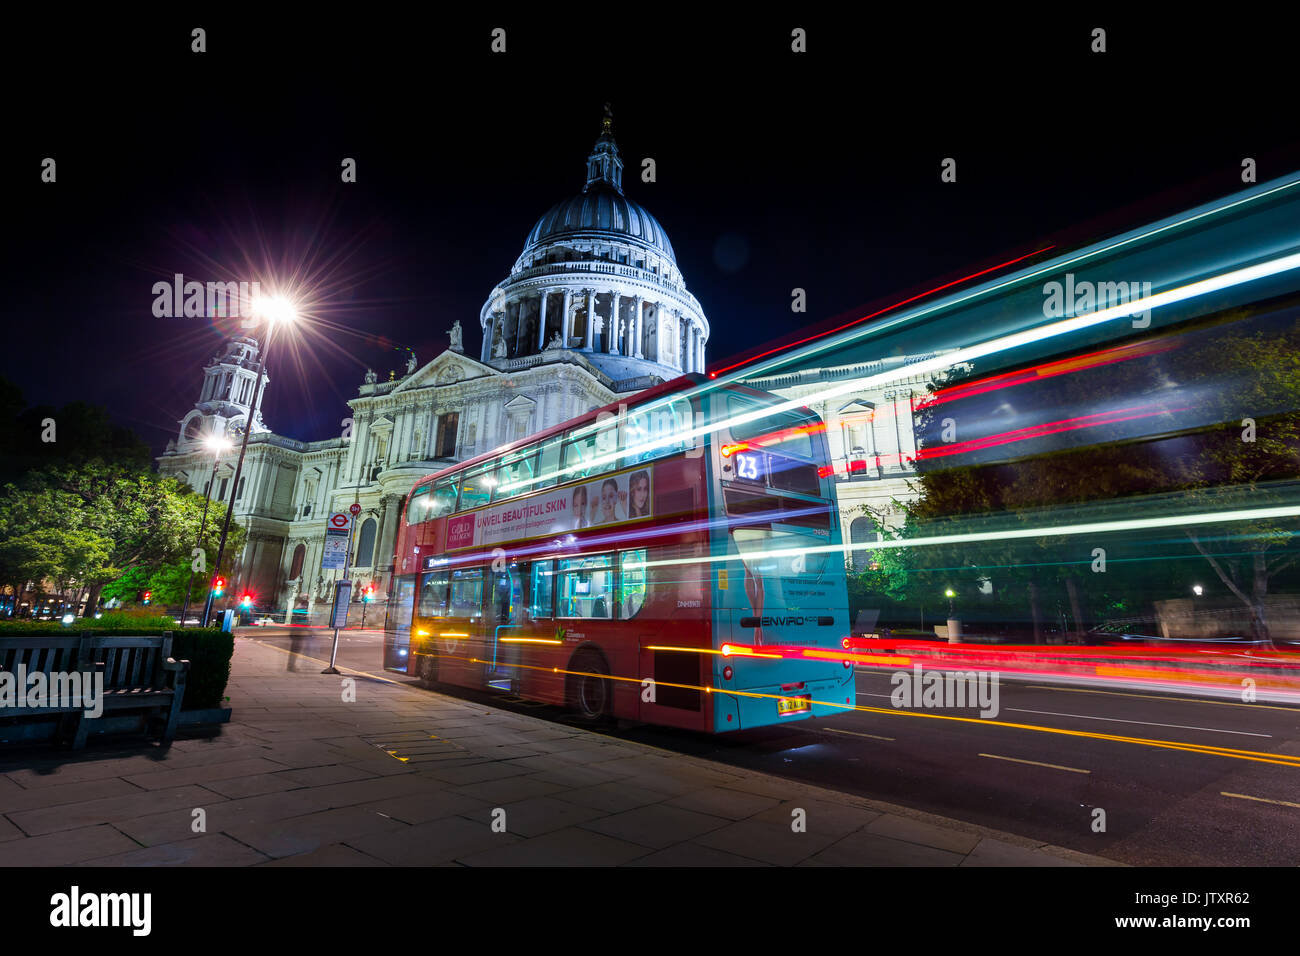 St Paul's Cathedral at night - Stock Image